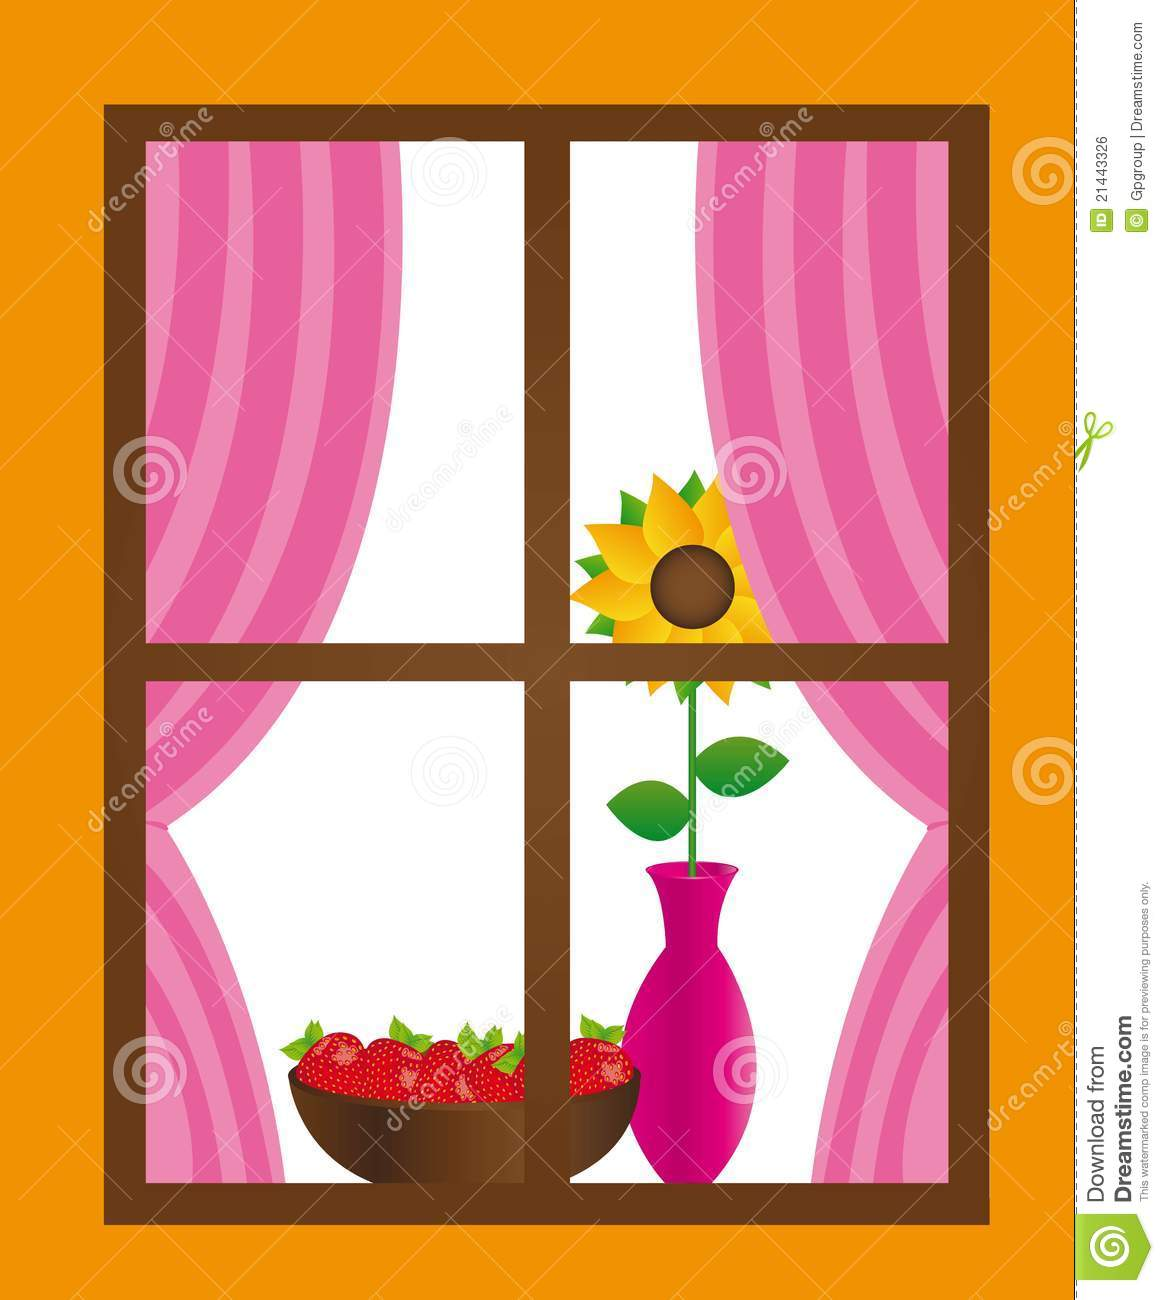 Kitchen Window Clip Art: Window Vector Stock Vector. Illustration Of Isolated